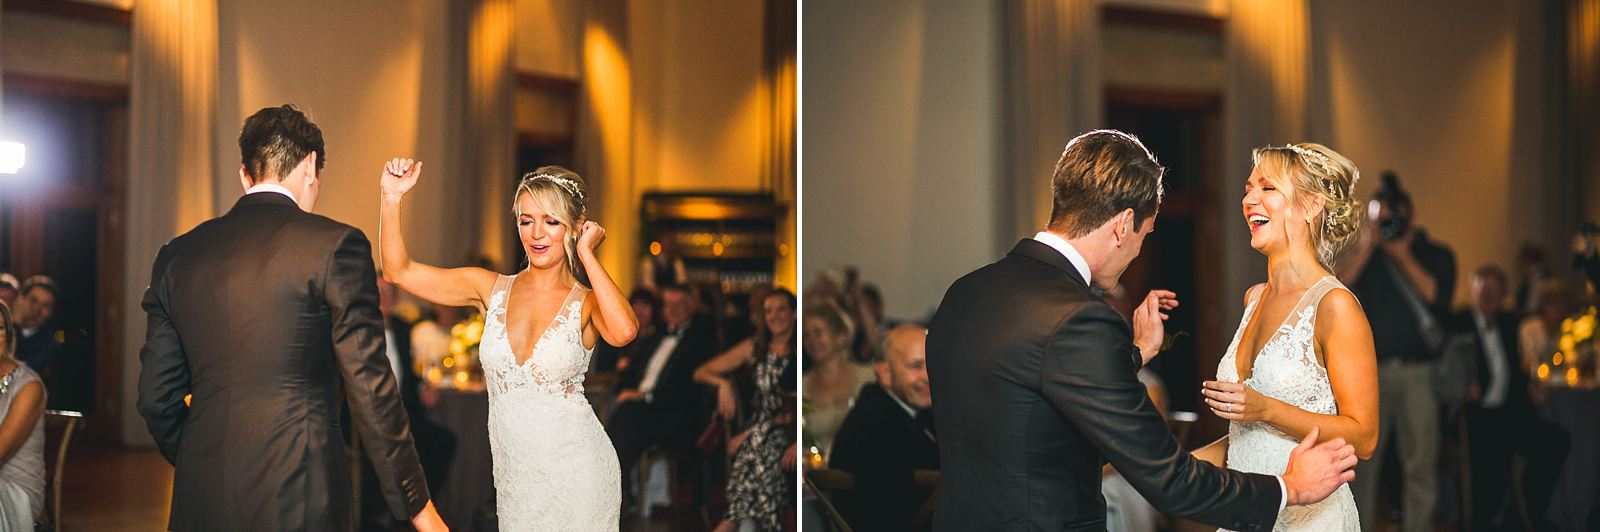 60 first dances at ivy room inspiration - Ivy Room Wedding // Audrey + Tyler